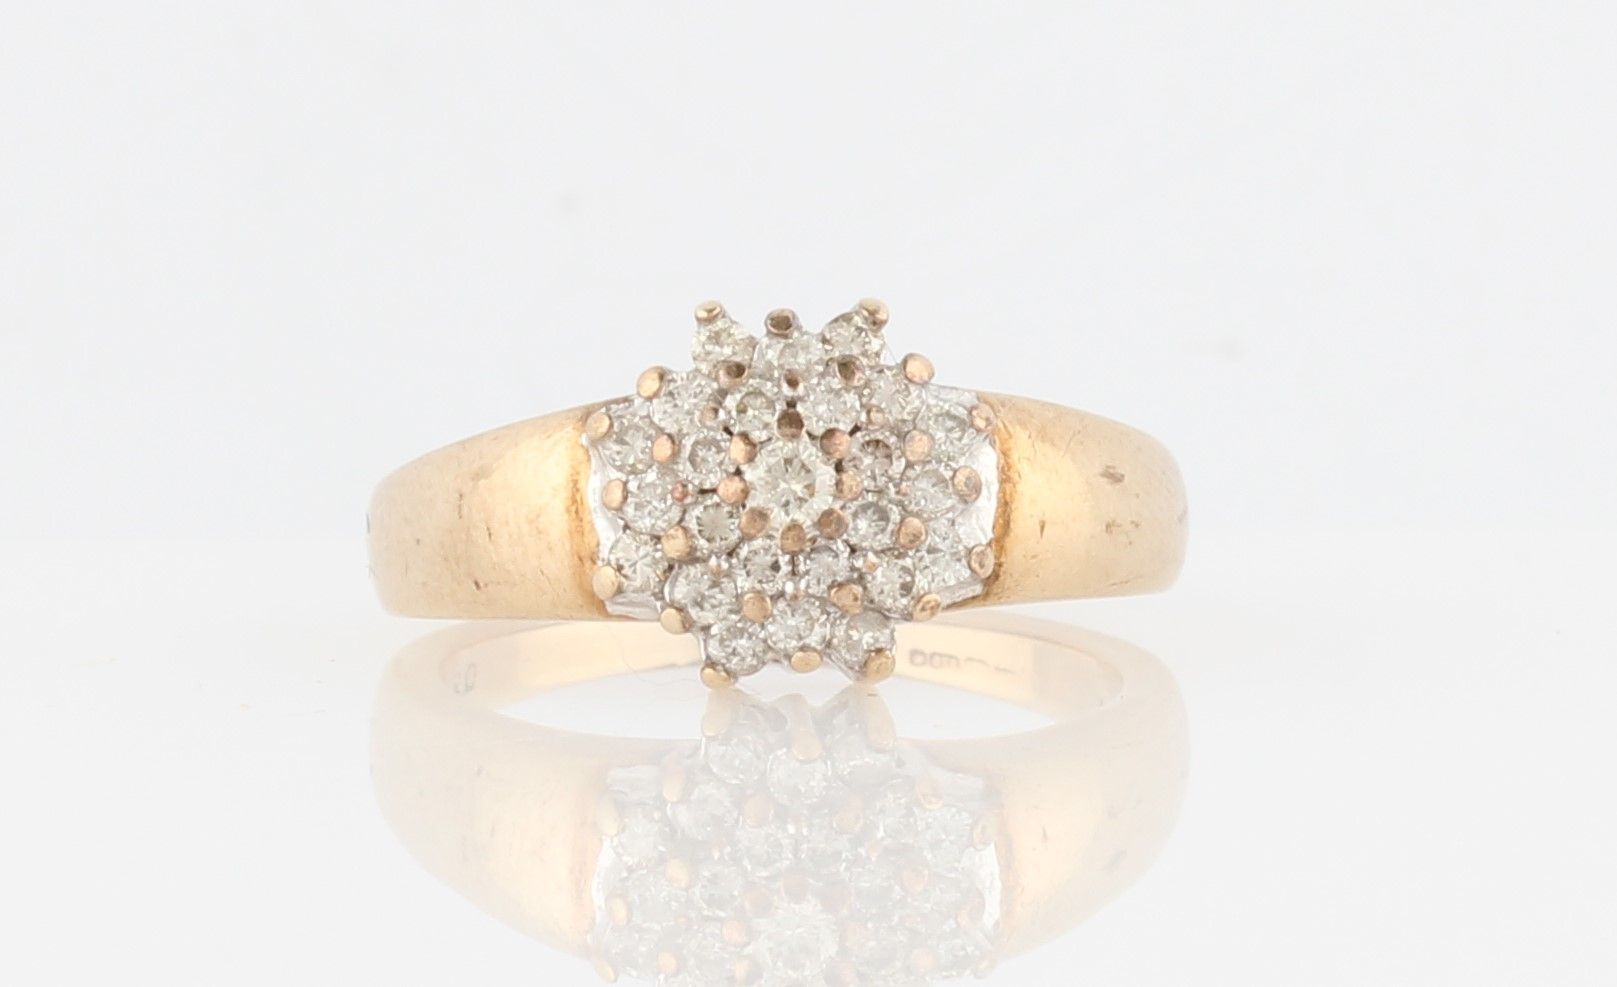 Lot 47 - A 9ct yellow gold tiered diamond cluster ring, set with four tiers of round brilliant cut